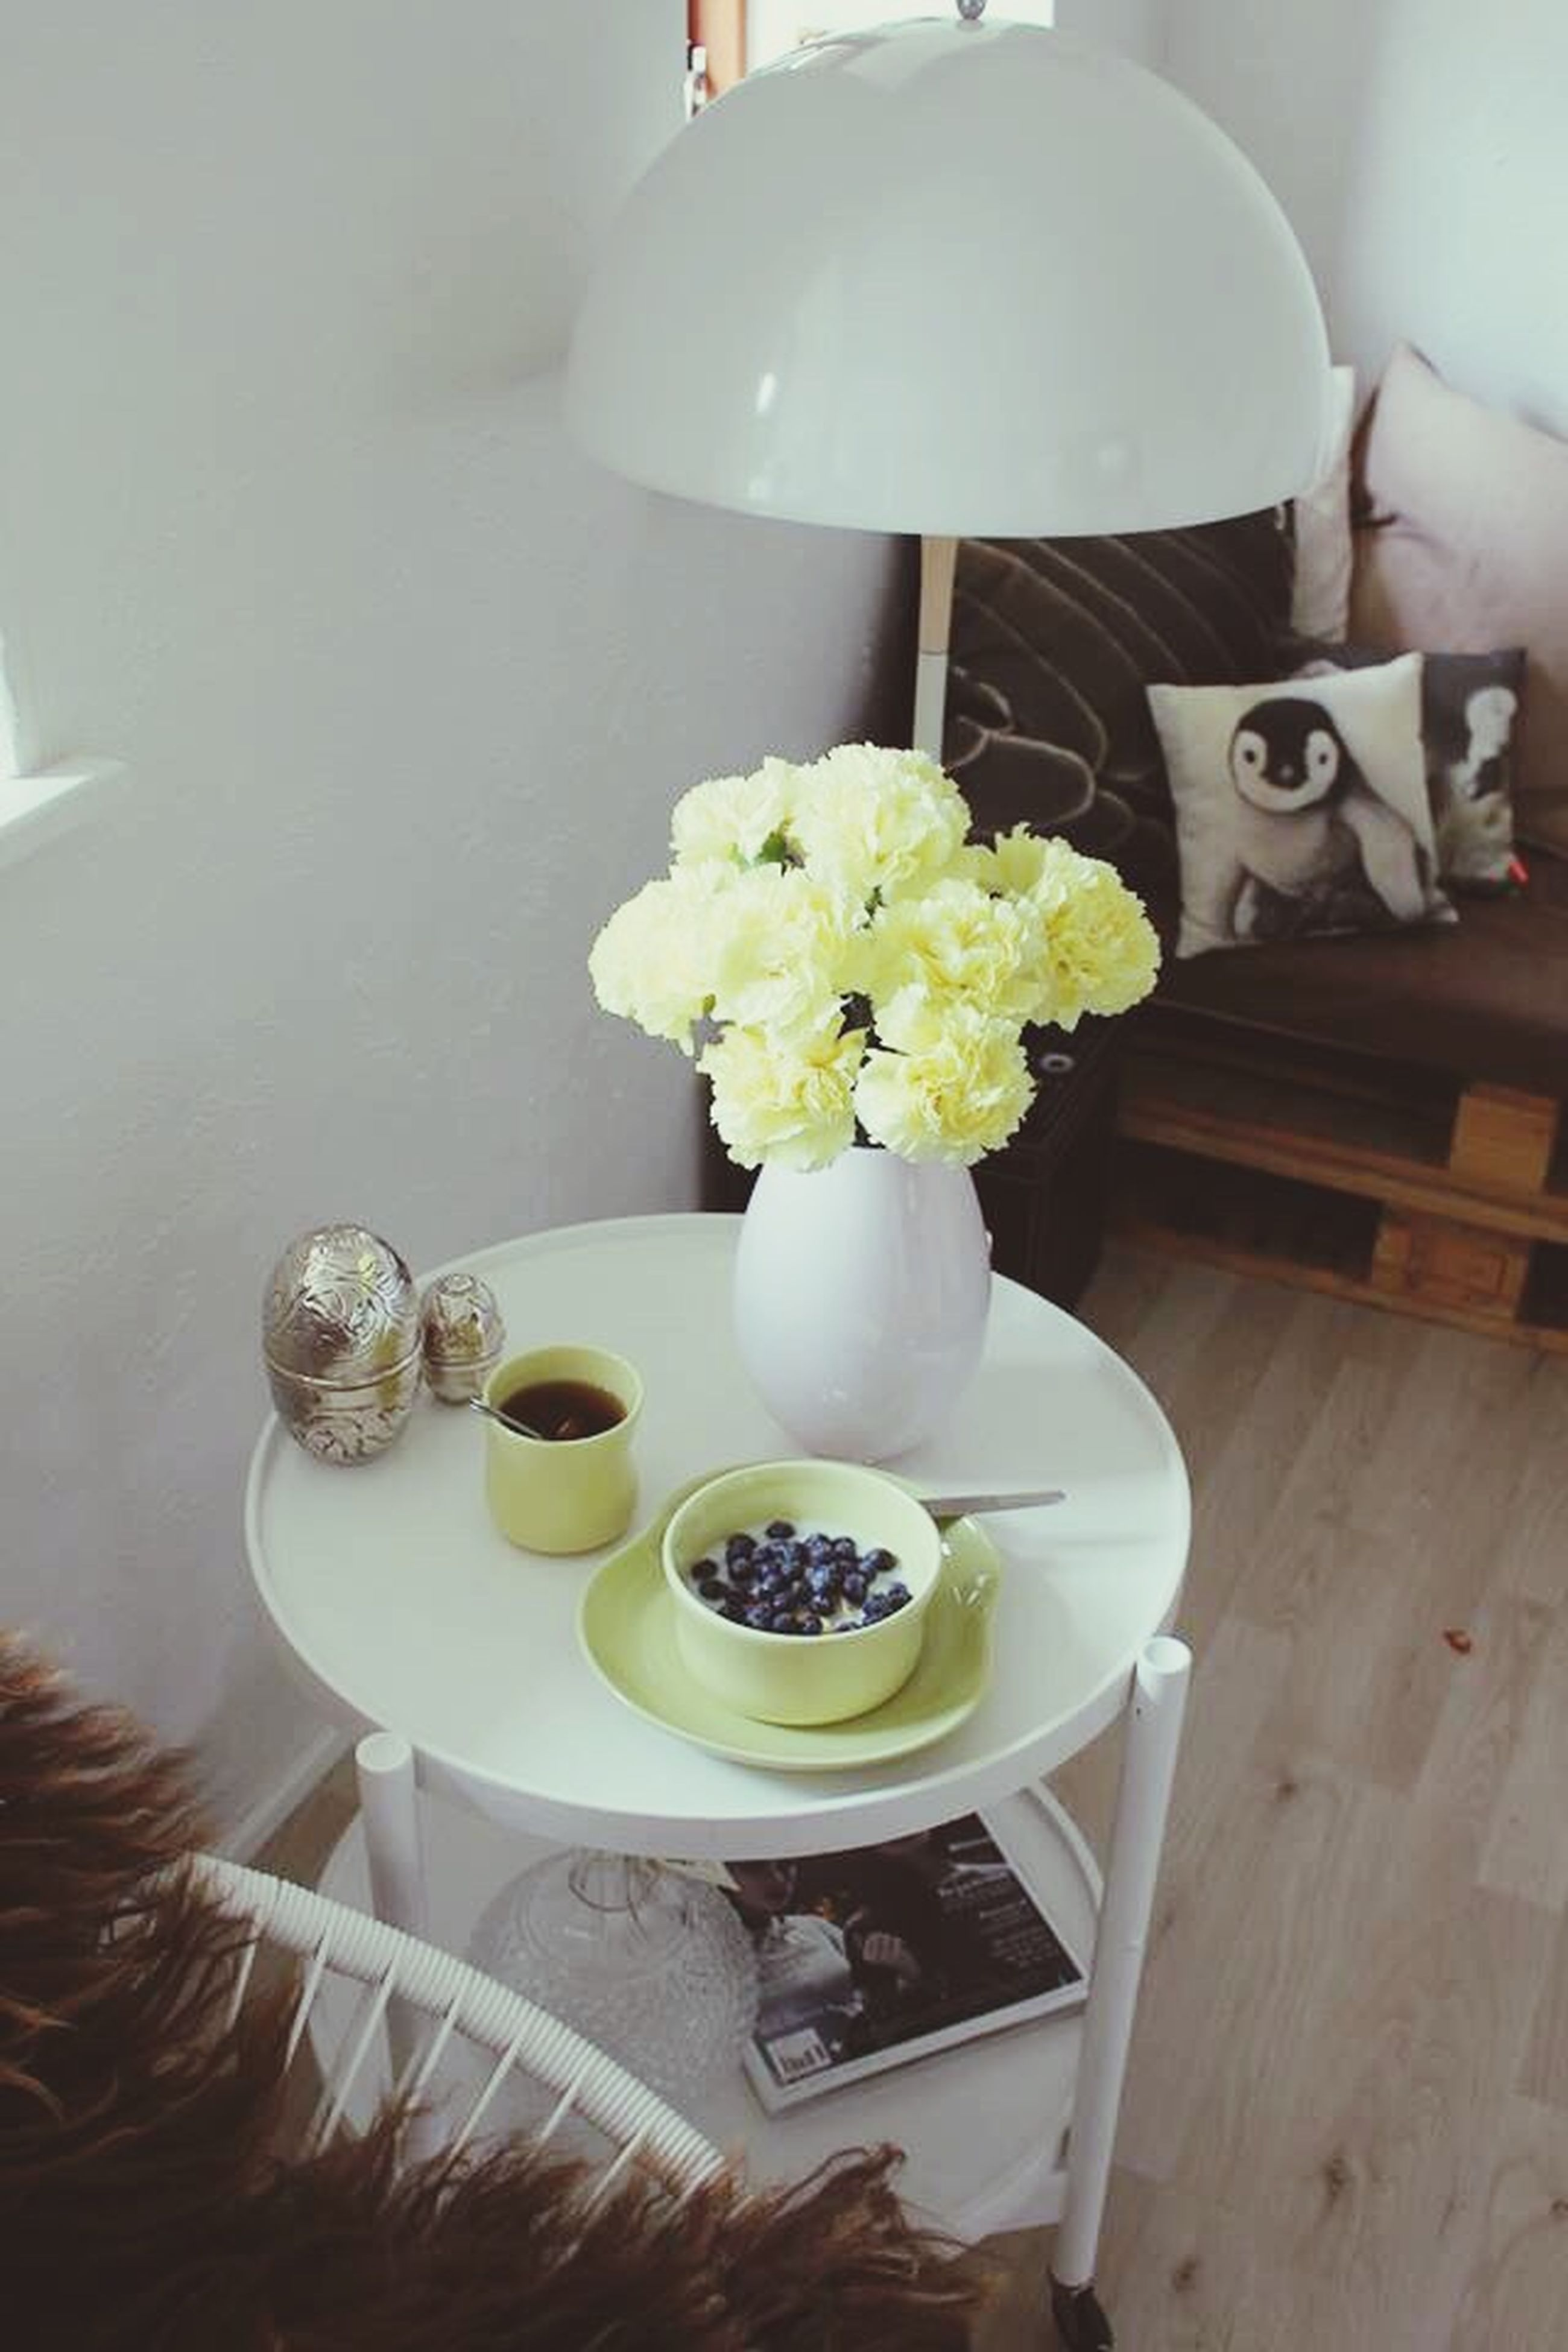 indoors, table, flower, freshness, vase, food and drink, home interior, still life, high angle view, chair, plate, white color, food, spoon, bowl, wood - material, coffee cup, dining table, potted plant, decoration